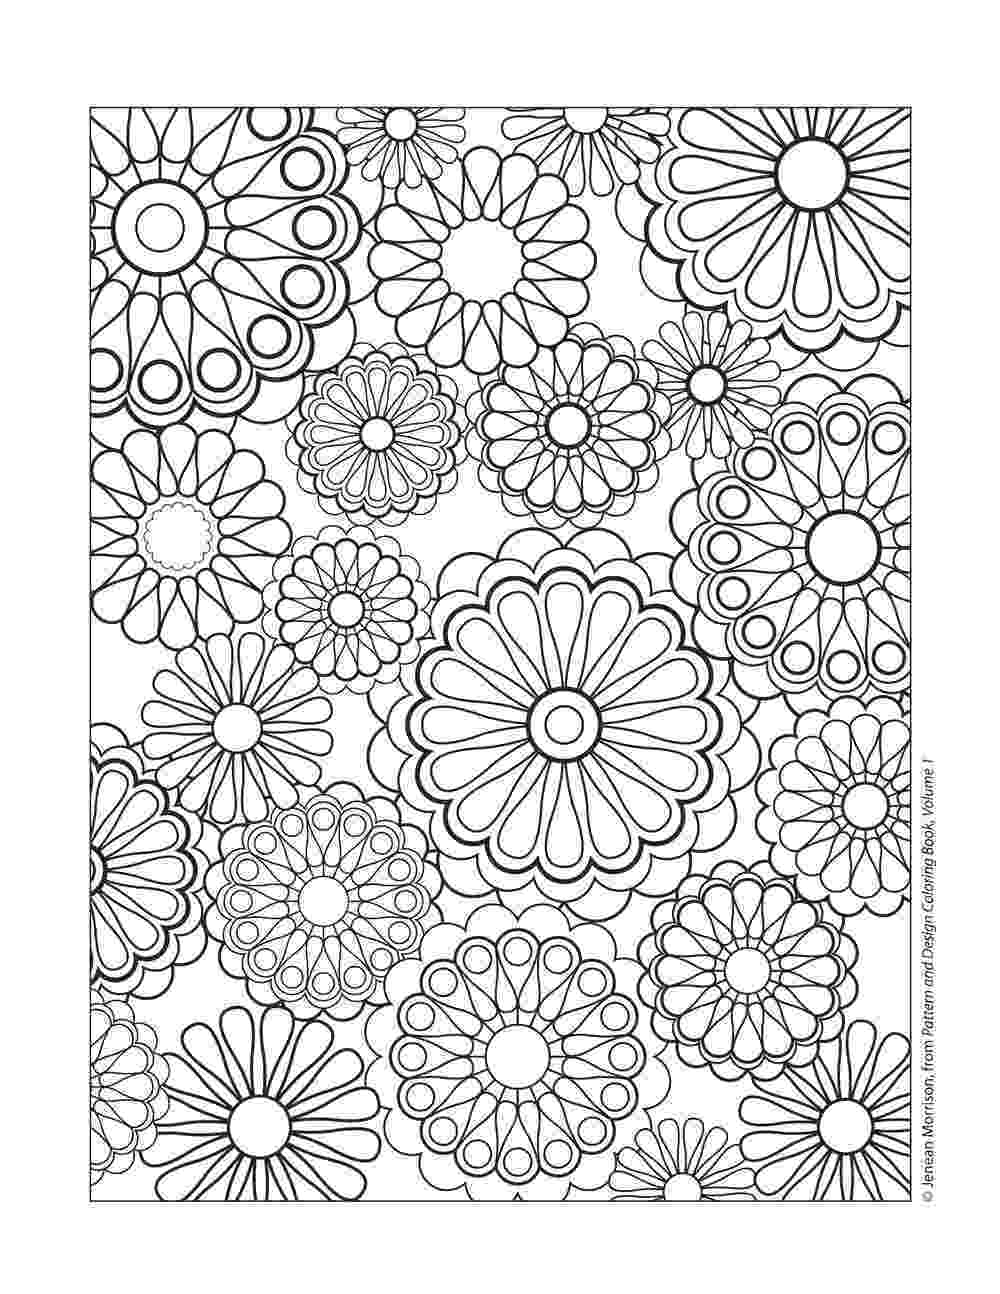 colouring sheets patterns floral pattern coloring page free printable coloring pages sheets colouring patterns